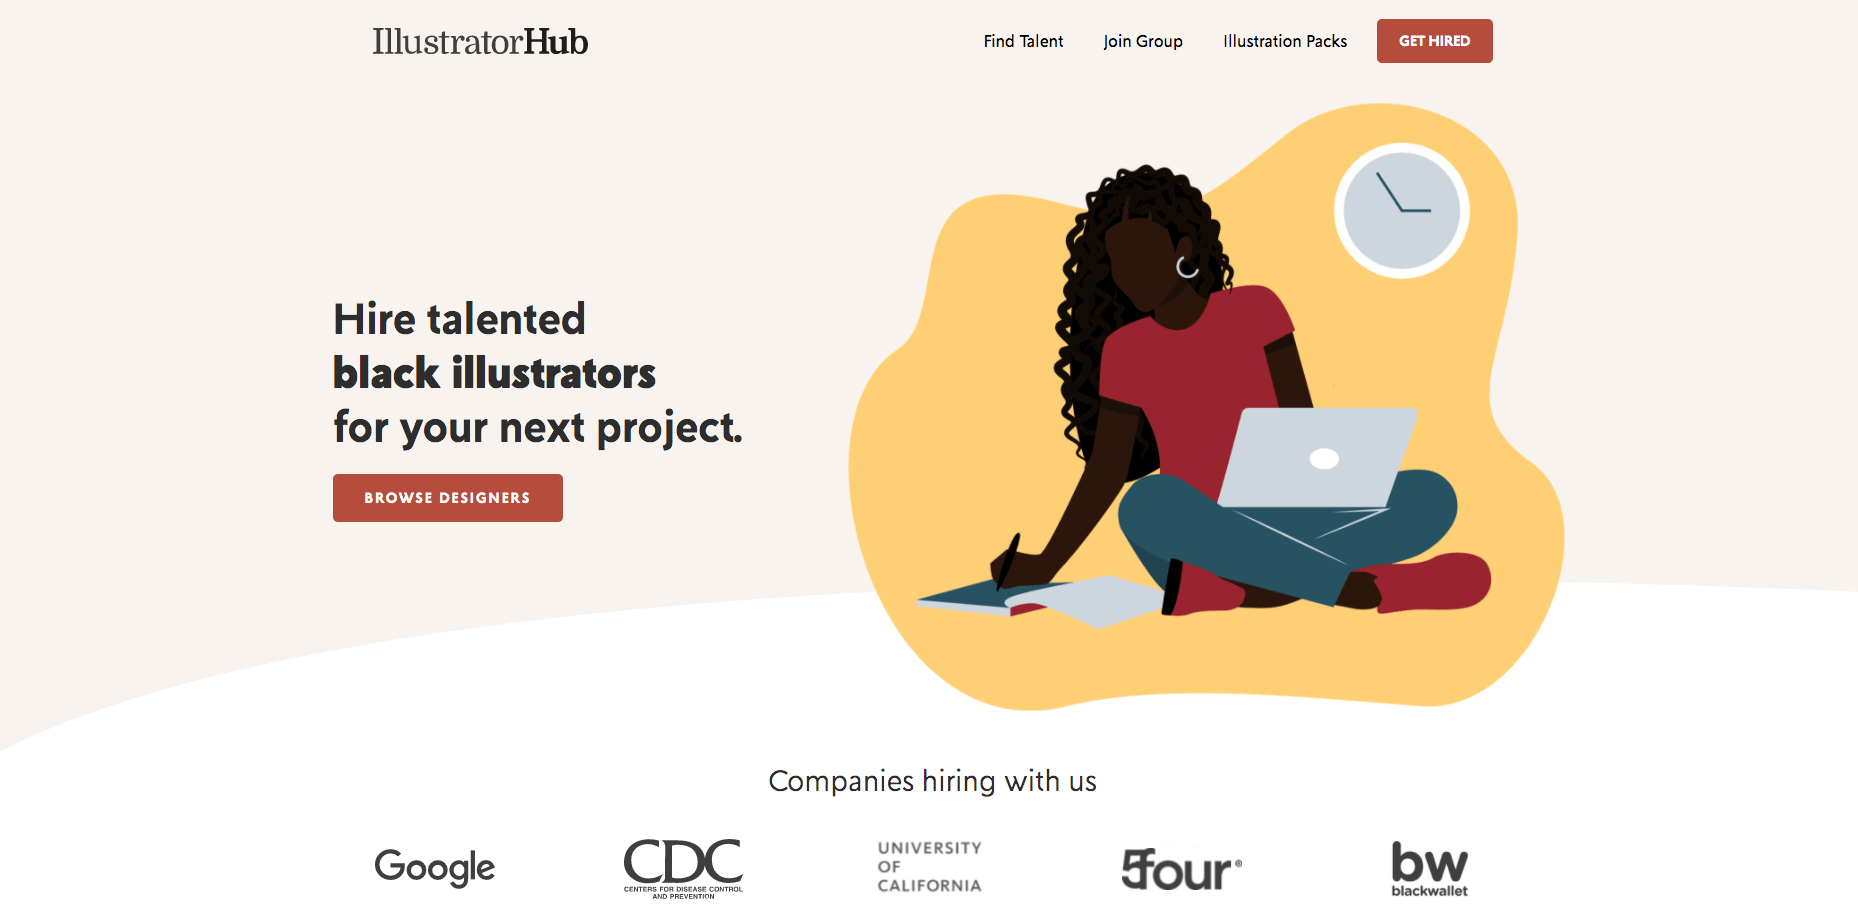 Illustrator Hub cover image with an illustration of a black woman on her computer working